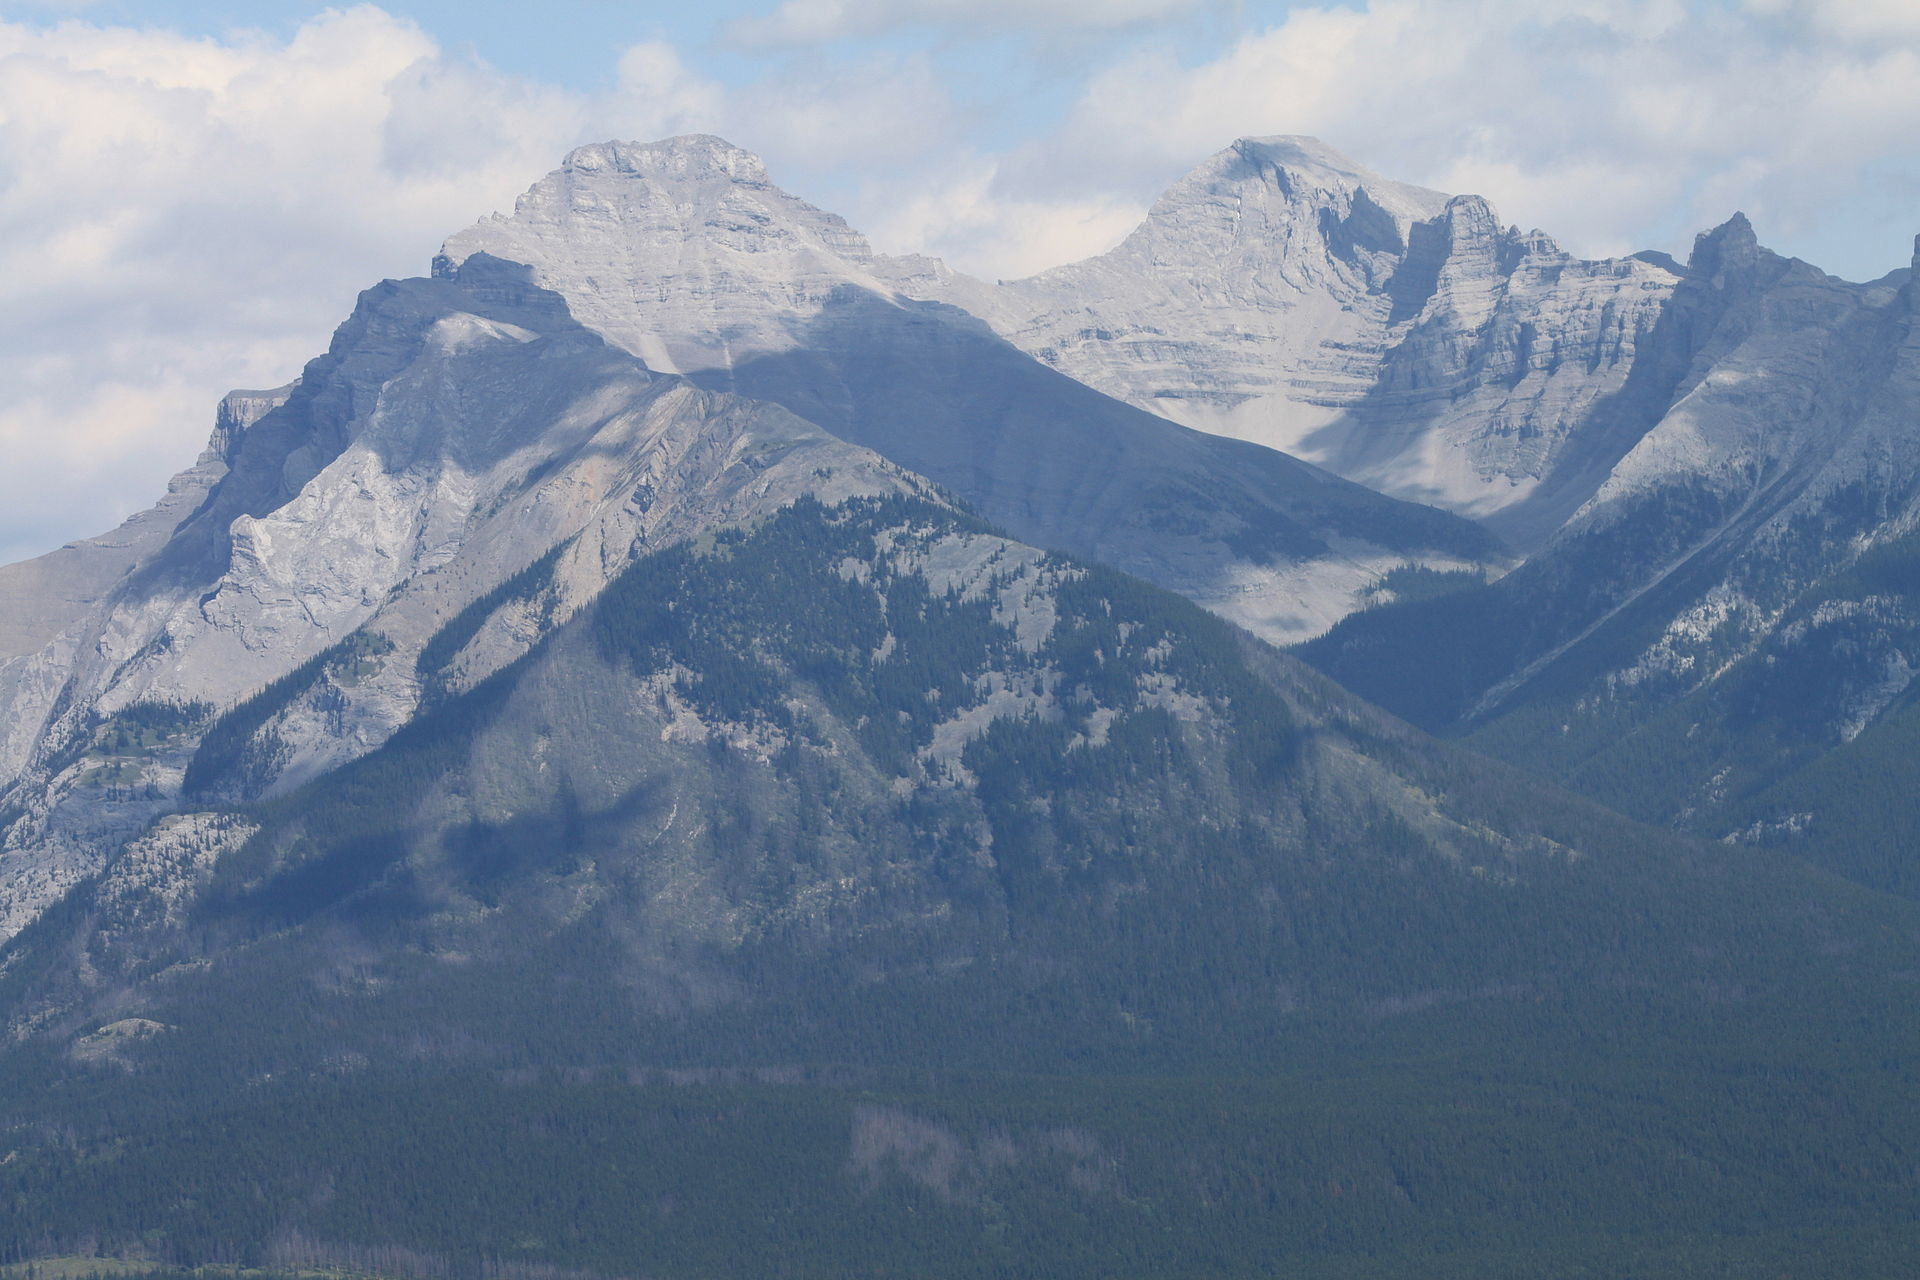 Mount Girouard on the right in Banff National